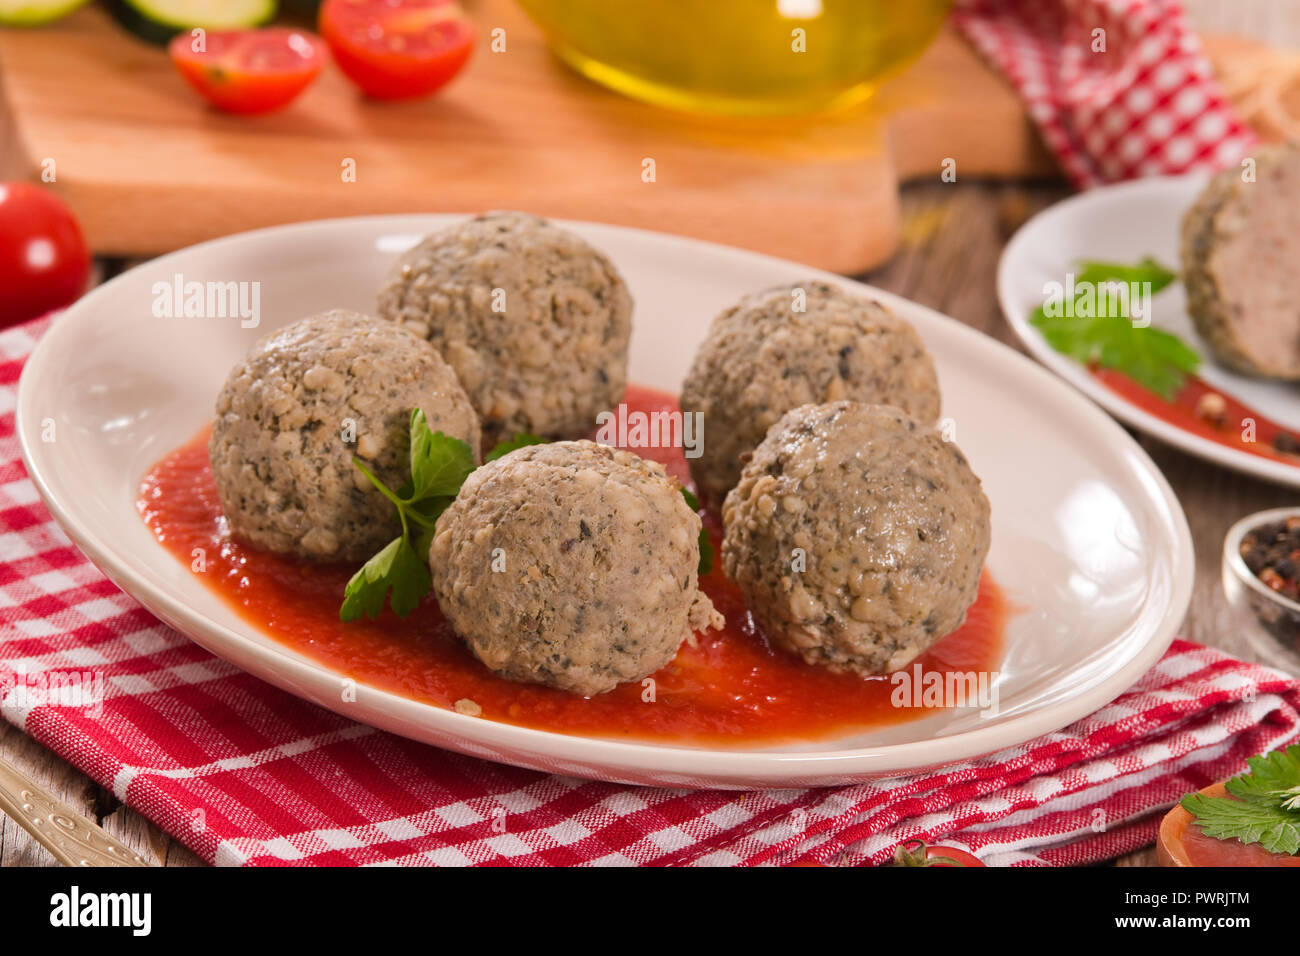 Meatballs with tomato sauce. - Stock Image